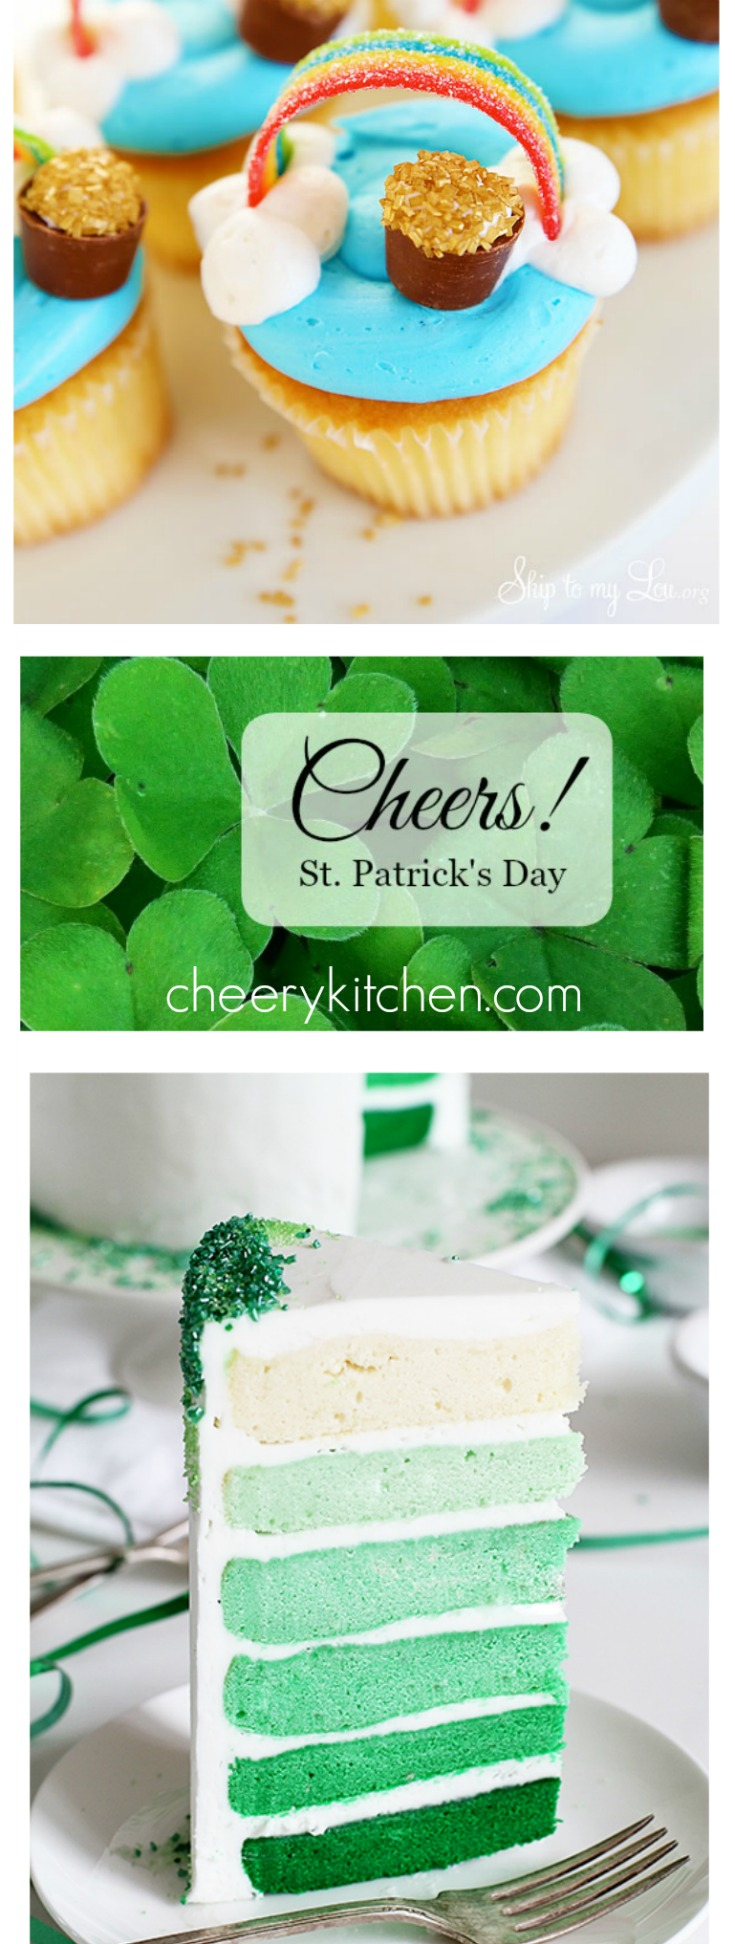 Celebrating St. Patrick's Day will never be the same after you see the crazy ways people celebrate! I never even thought about these ideas!